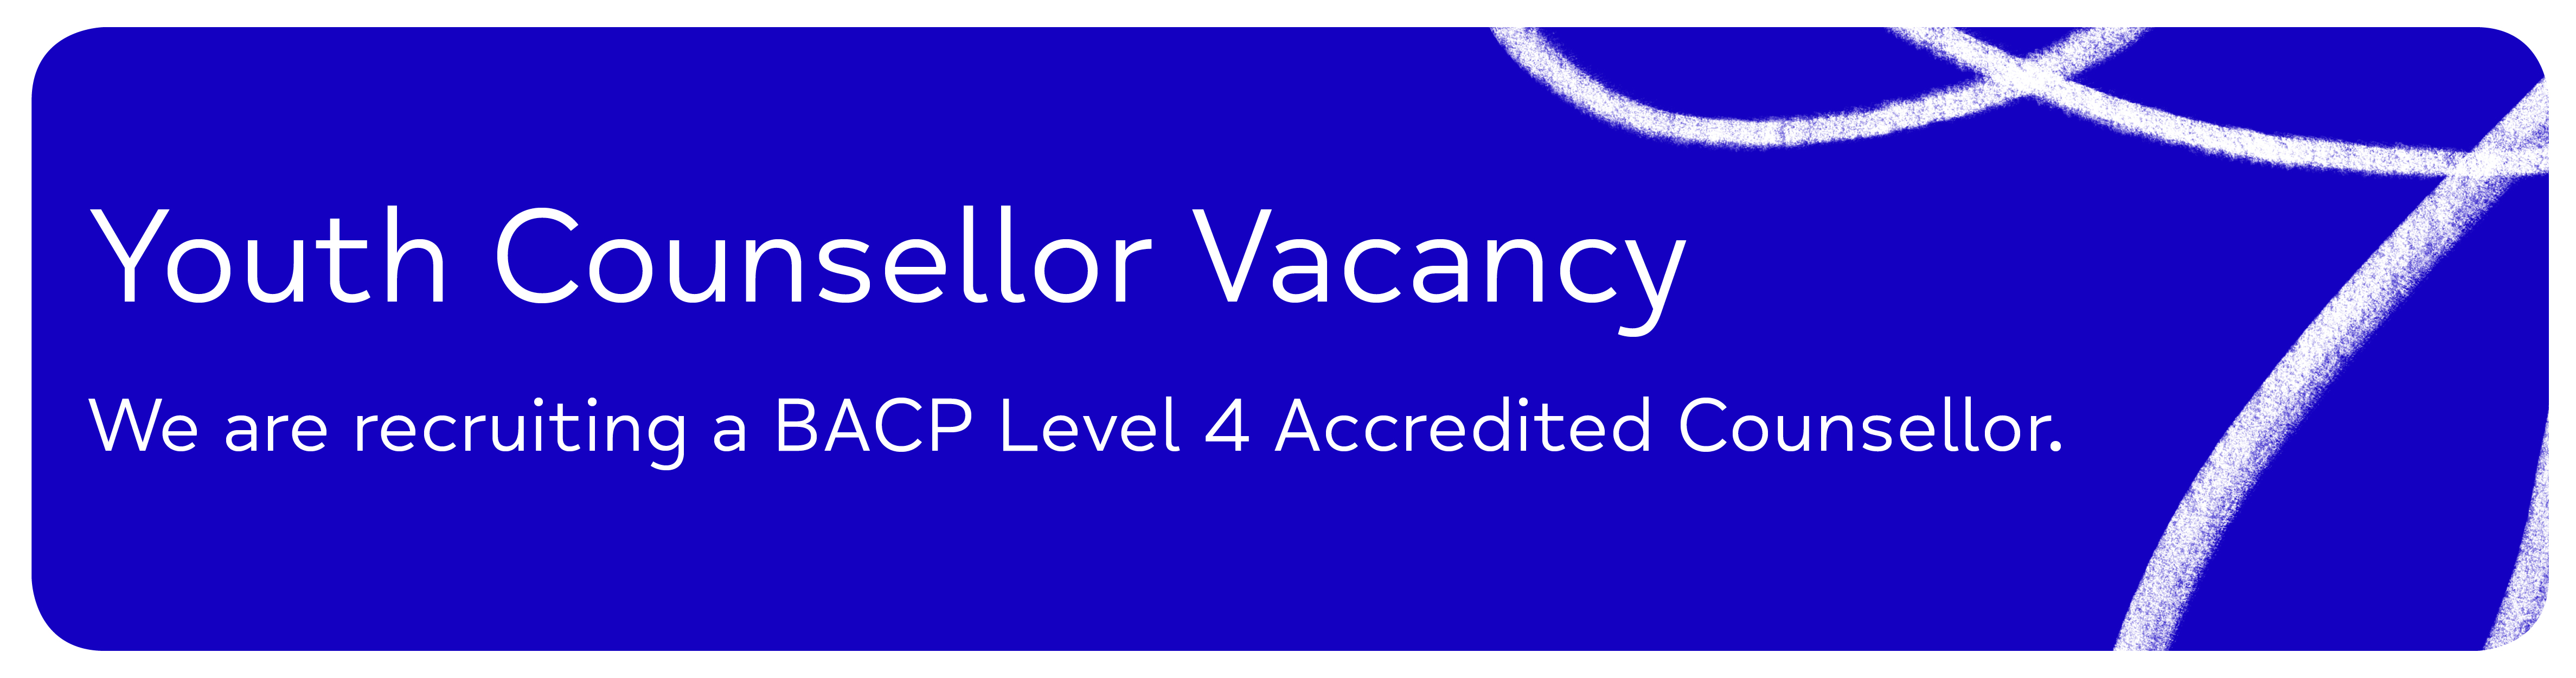 Youth Counsellor Vacancy We are recruiting a BACP Level 4 Accredited Counsellor.